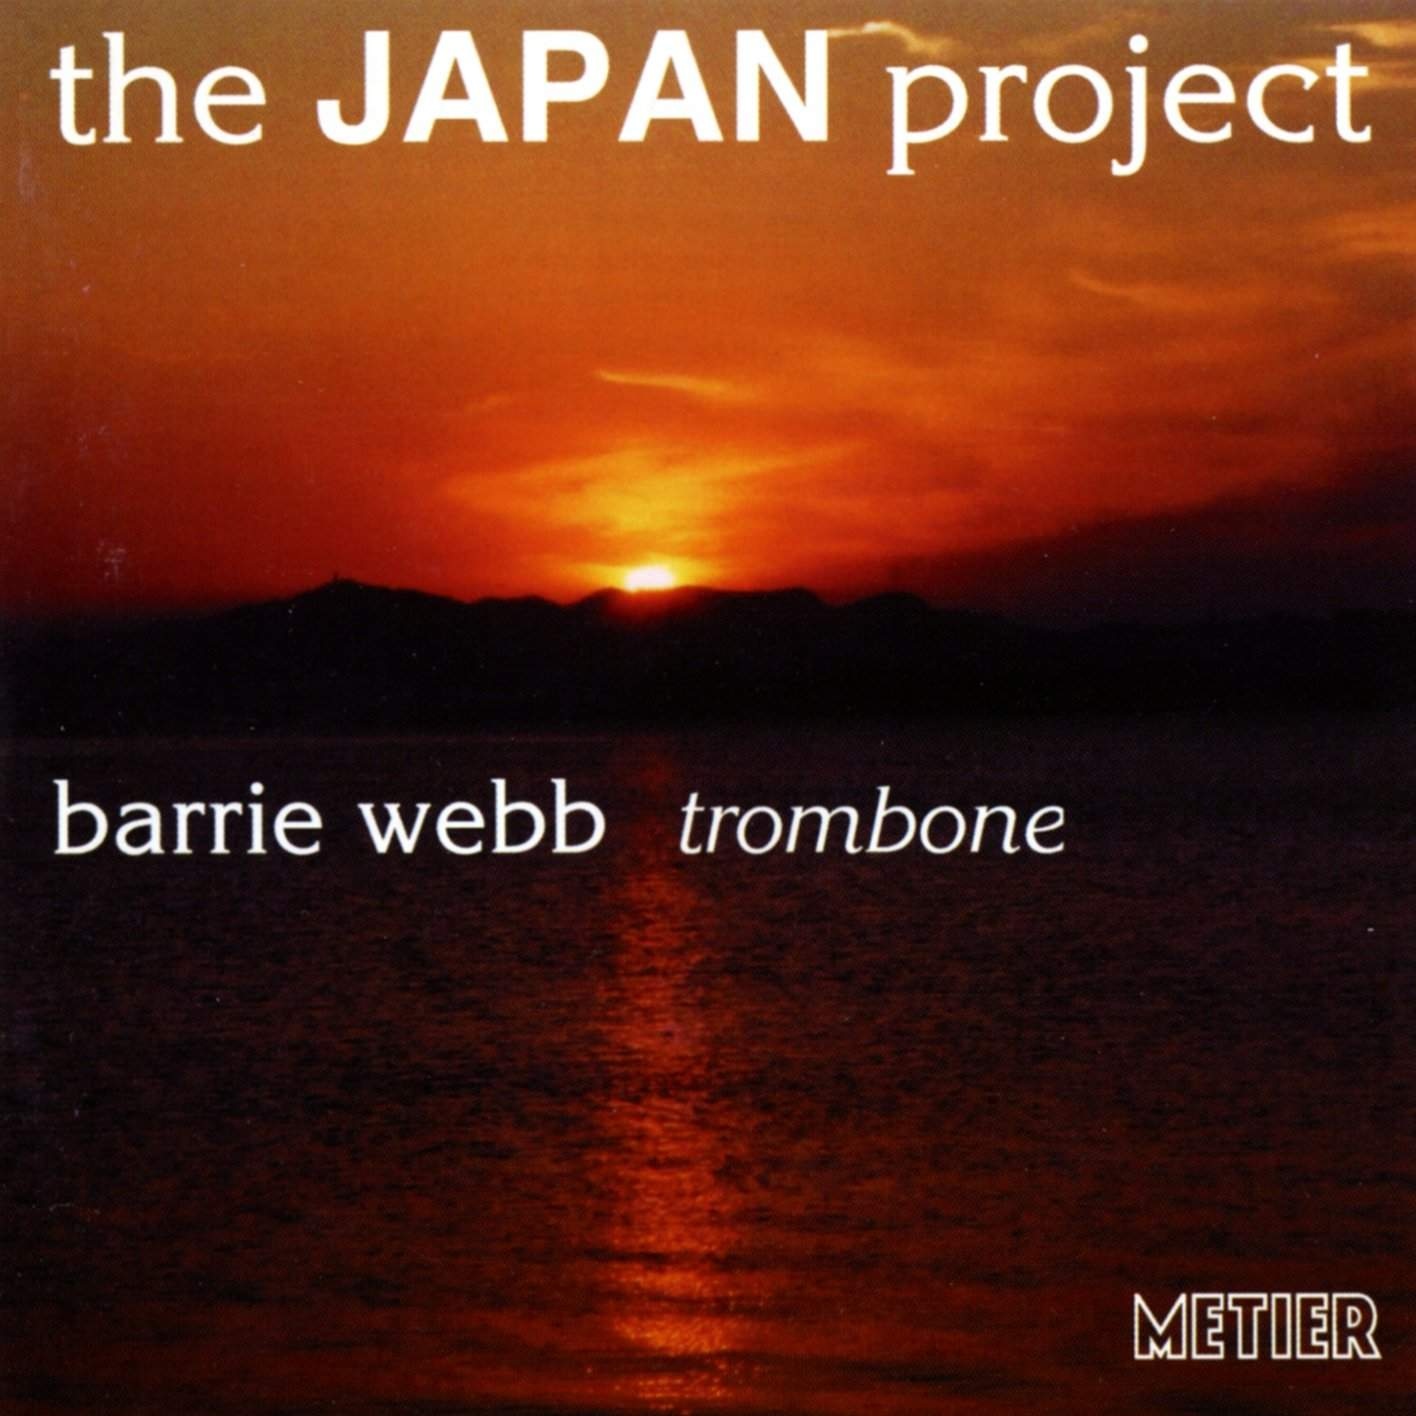 The Japan Project